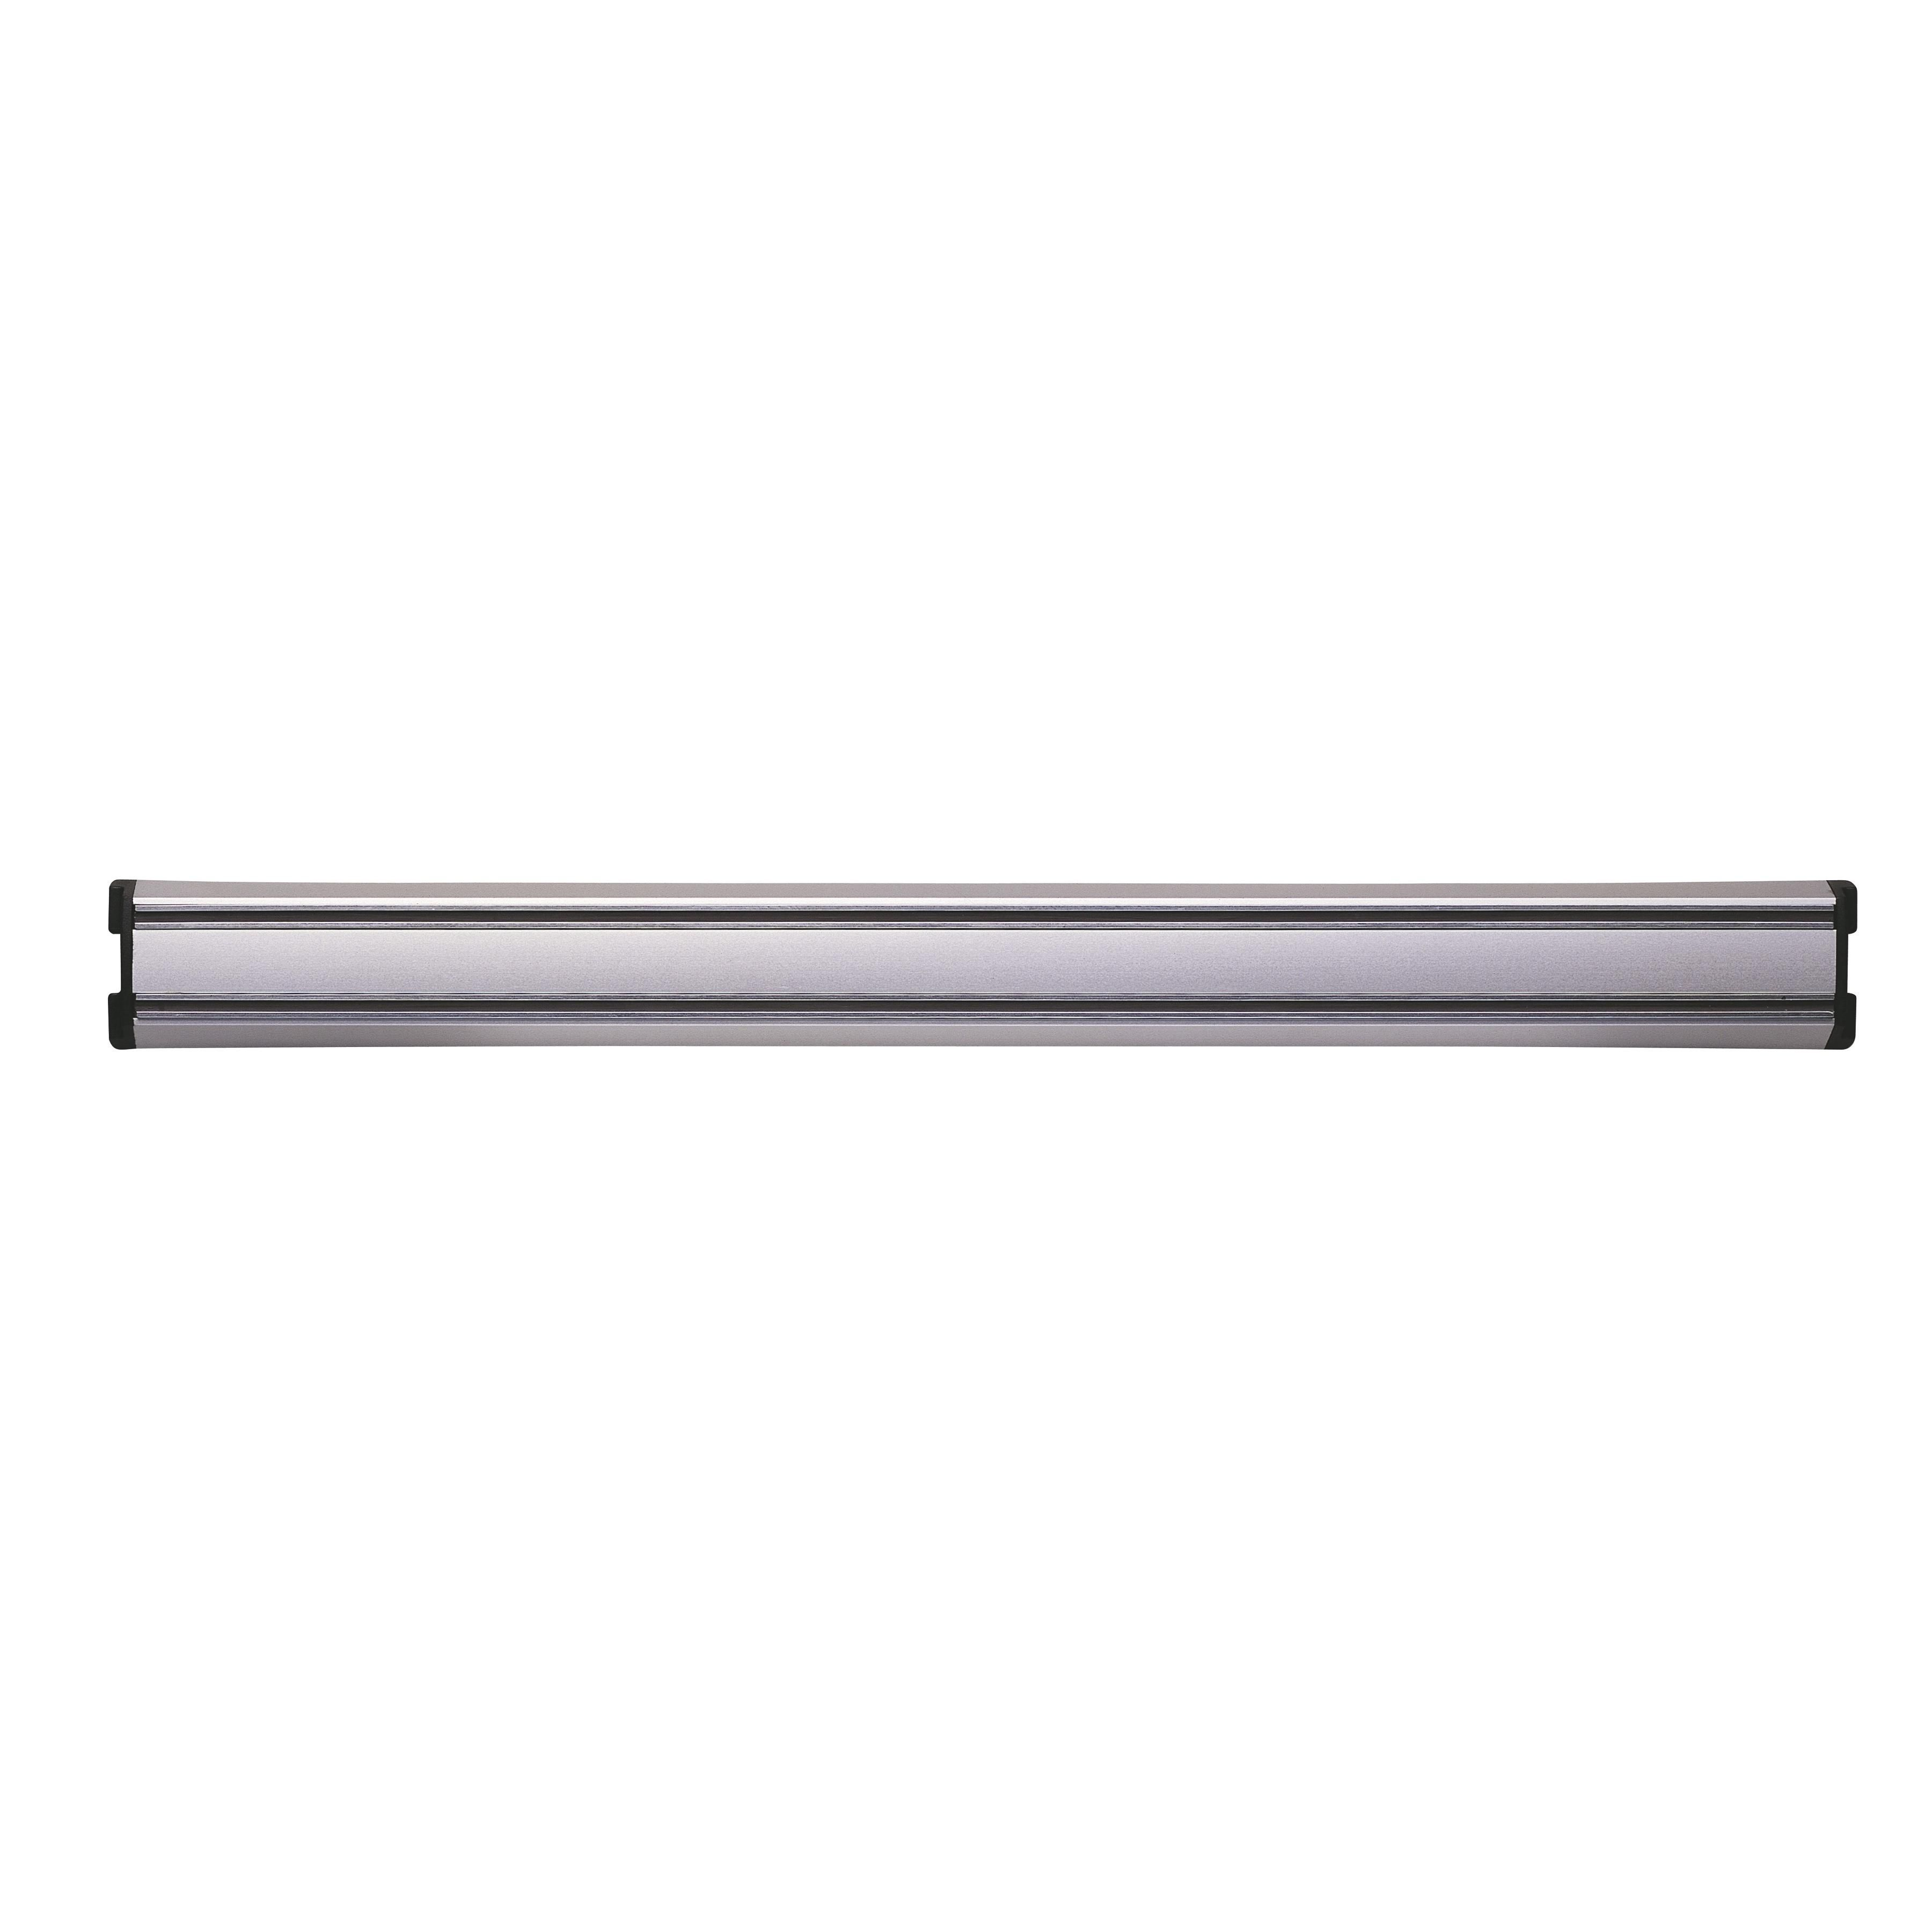 Zwilling 32622-450 Magnetic bar